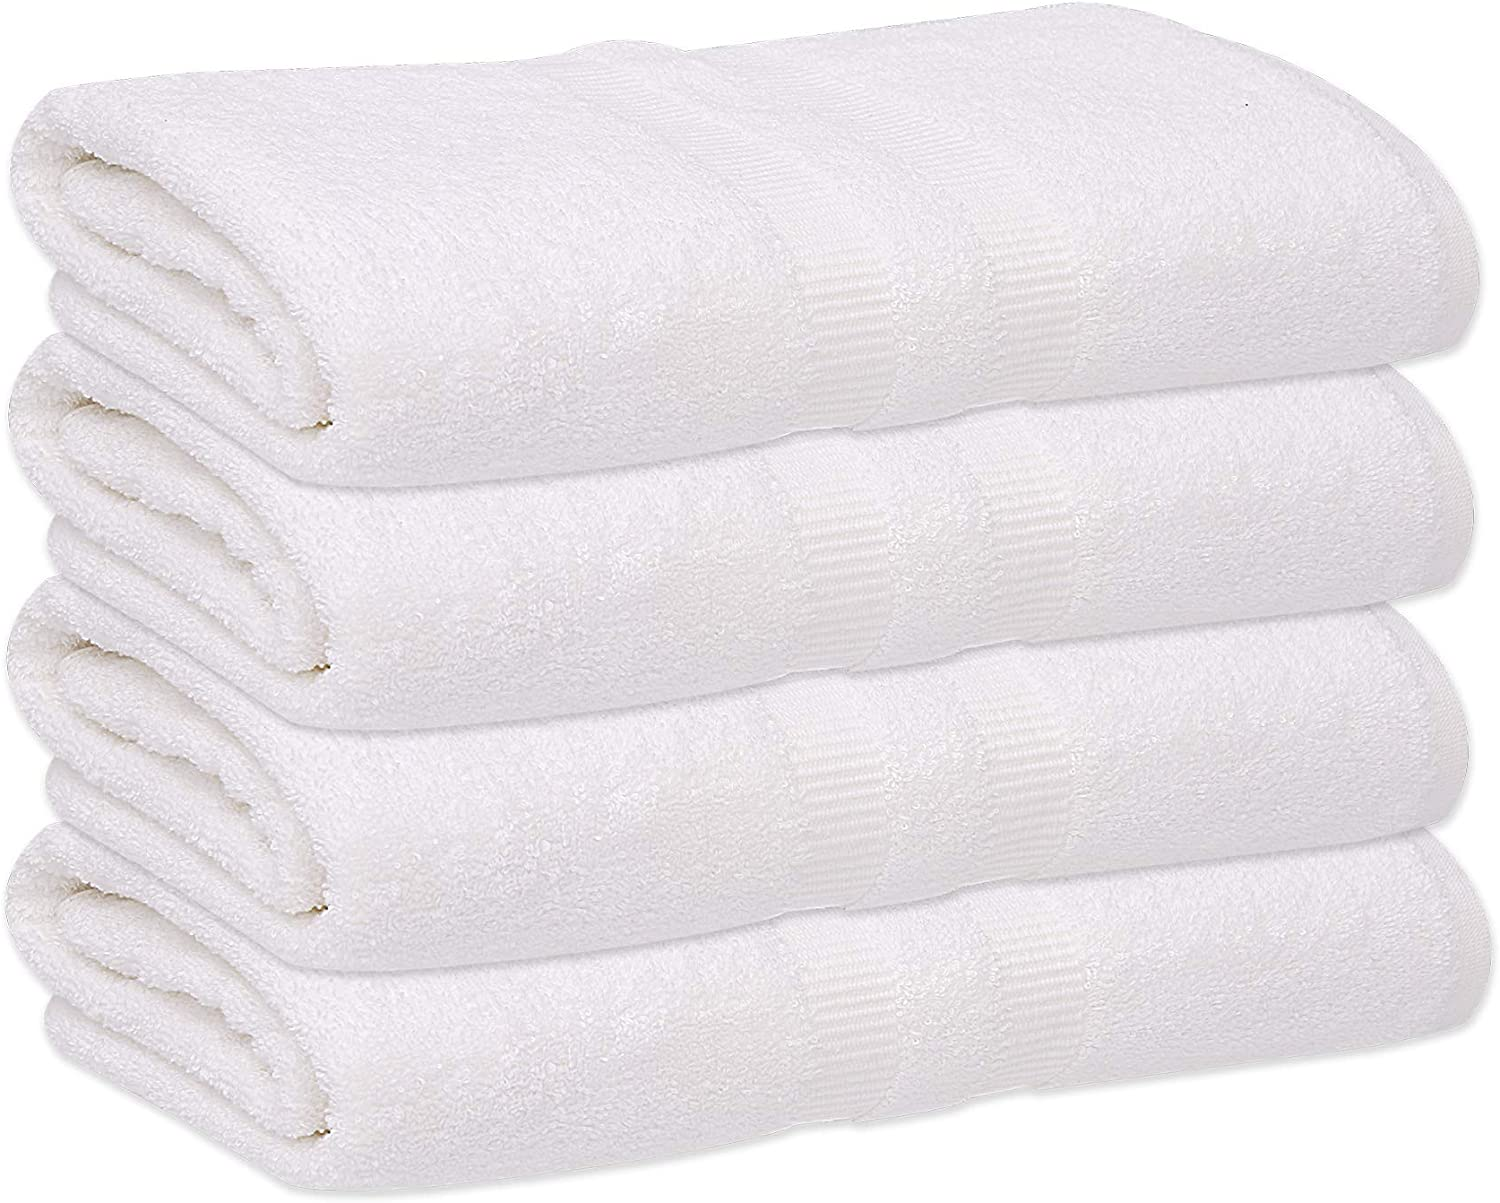 gold TEXTILES 6 Pack Premium Cotton Bath Sheets (Bright White, 30x60 Inch) Luxury Bath Towel Perfect for Home, Bathrooms, Pool and Gym Ringspun Cotton (6, White)